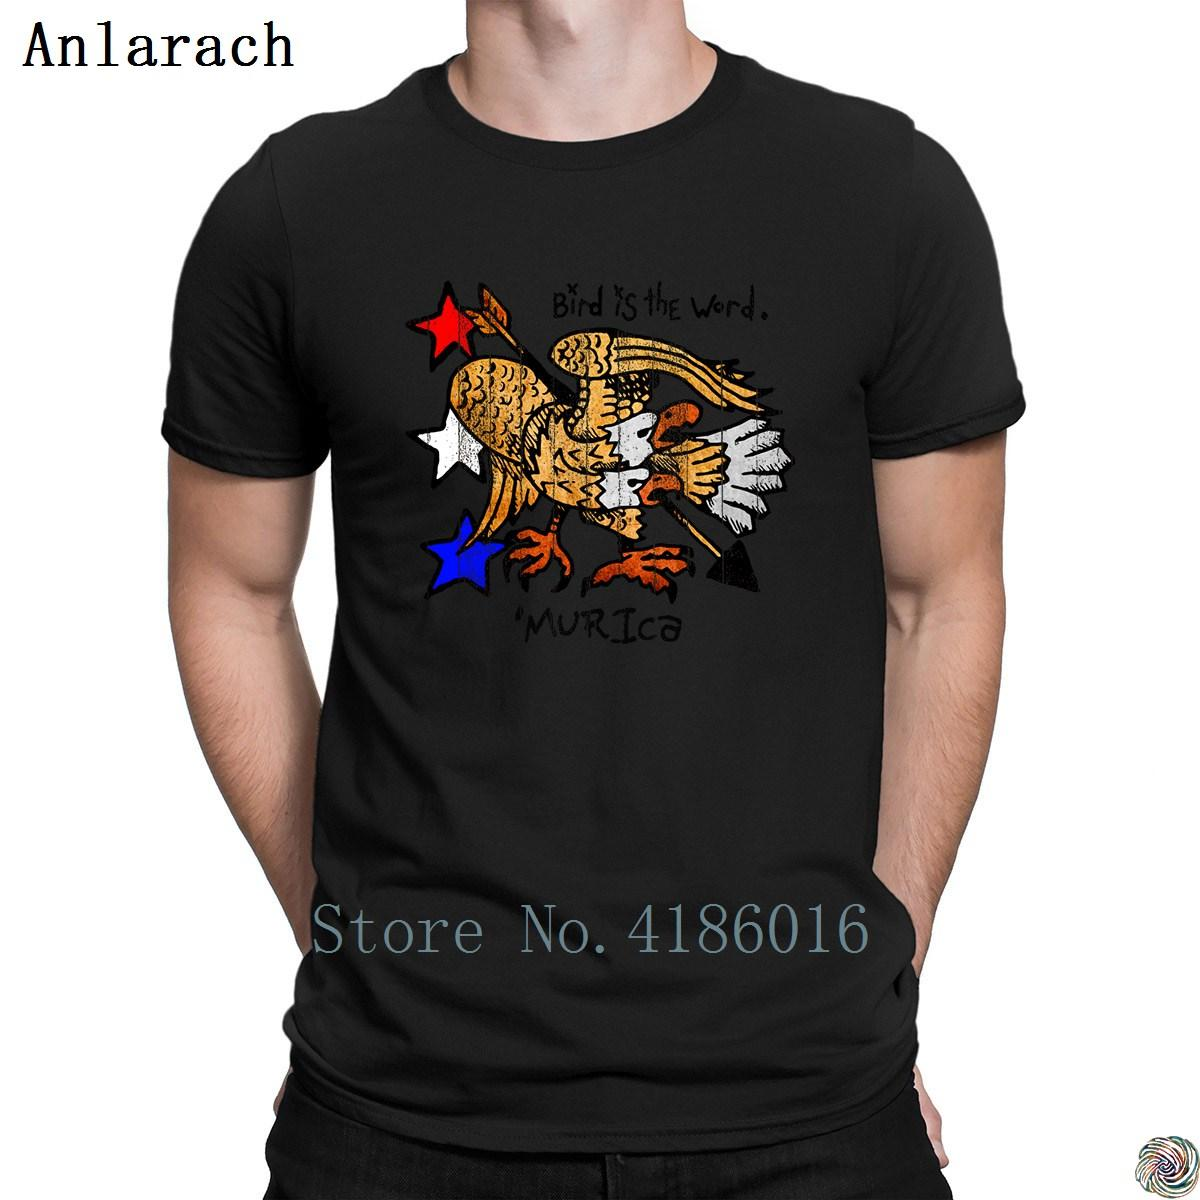 Bird is the word t-shirts fitted Design Tee tops Vintage t shirt for men Euro Size S-3xl homme 2018 Classical